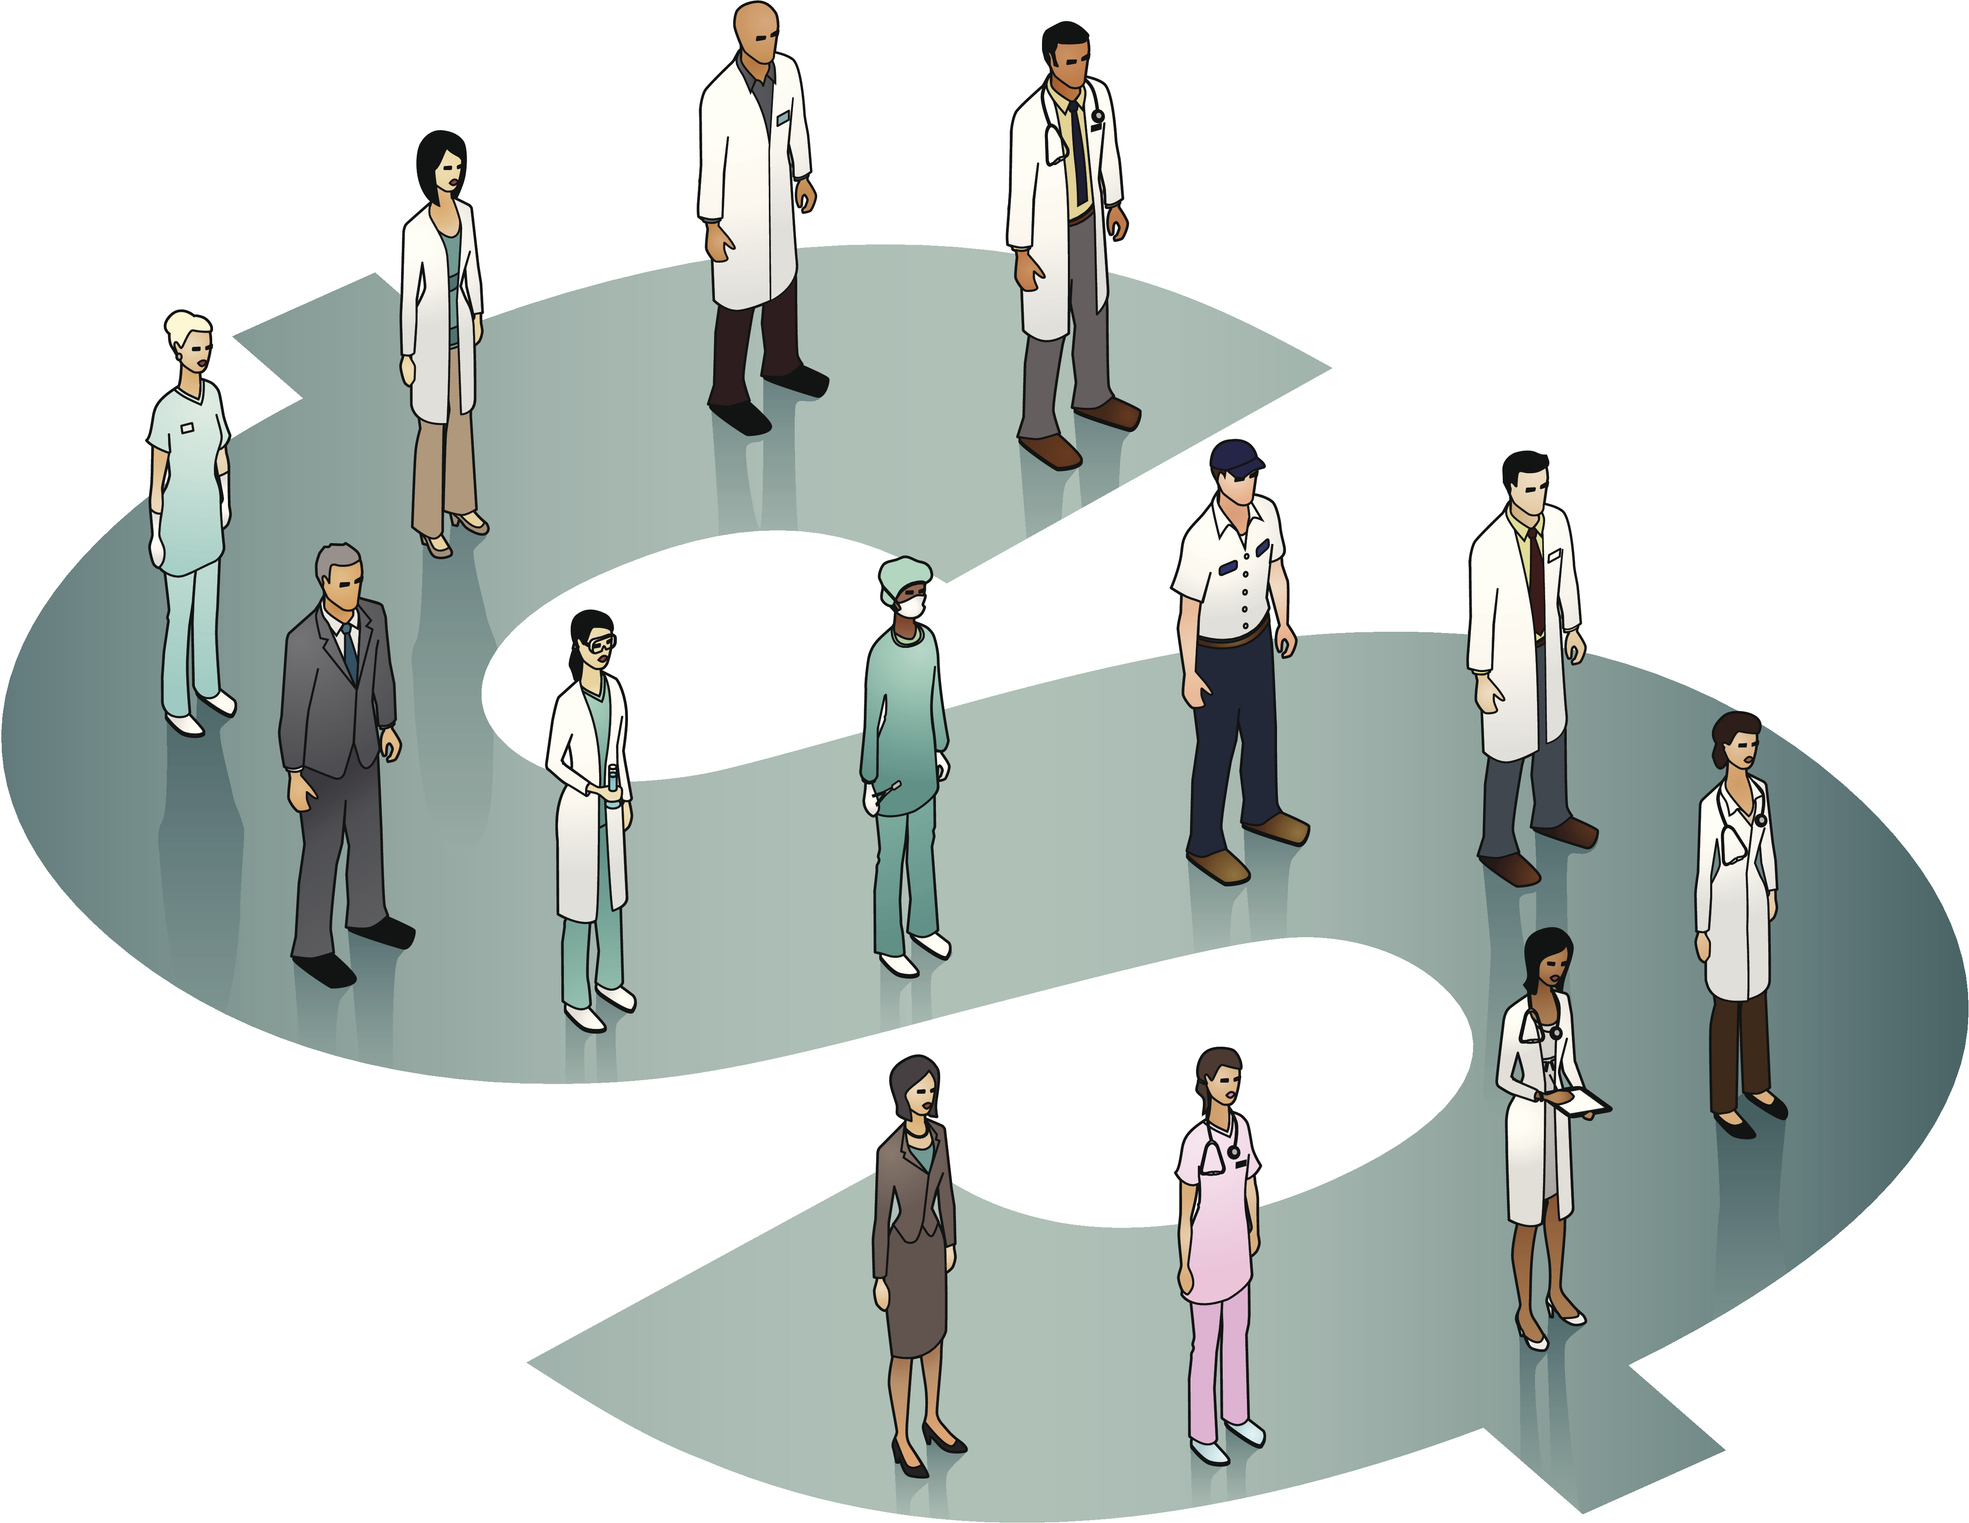 Illustration of healthcare workers standing on a dollar sign